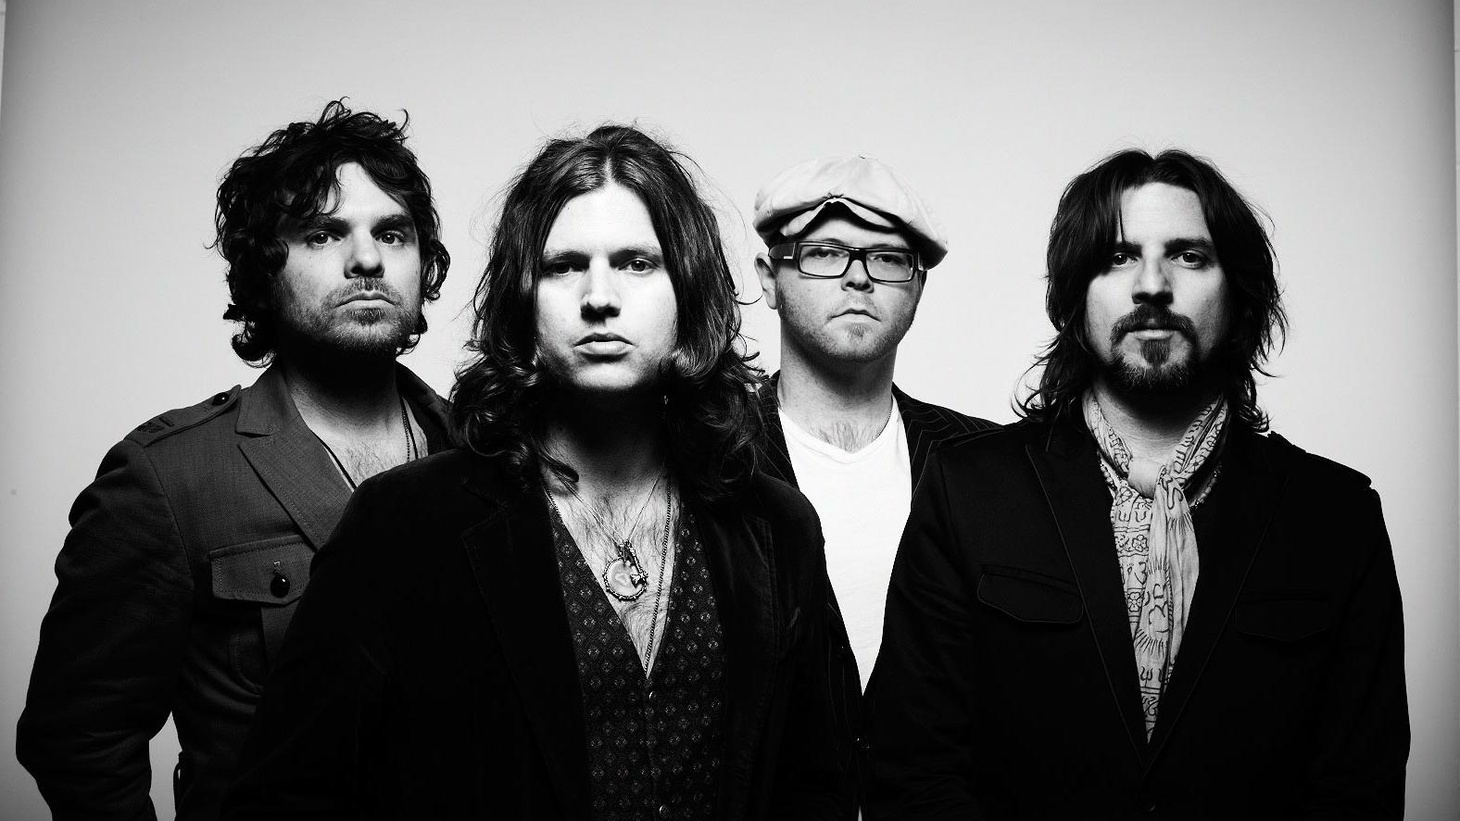 LA's Rival Sons capture the classic sound of rock with a nod to metal. Their guitar-driven songs evoke Led Zeppelin and aim to bottle the excitement of their live shows.